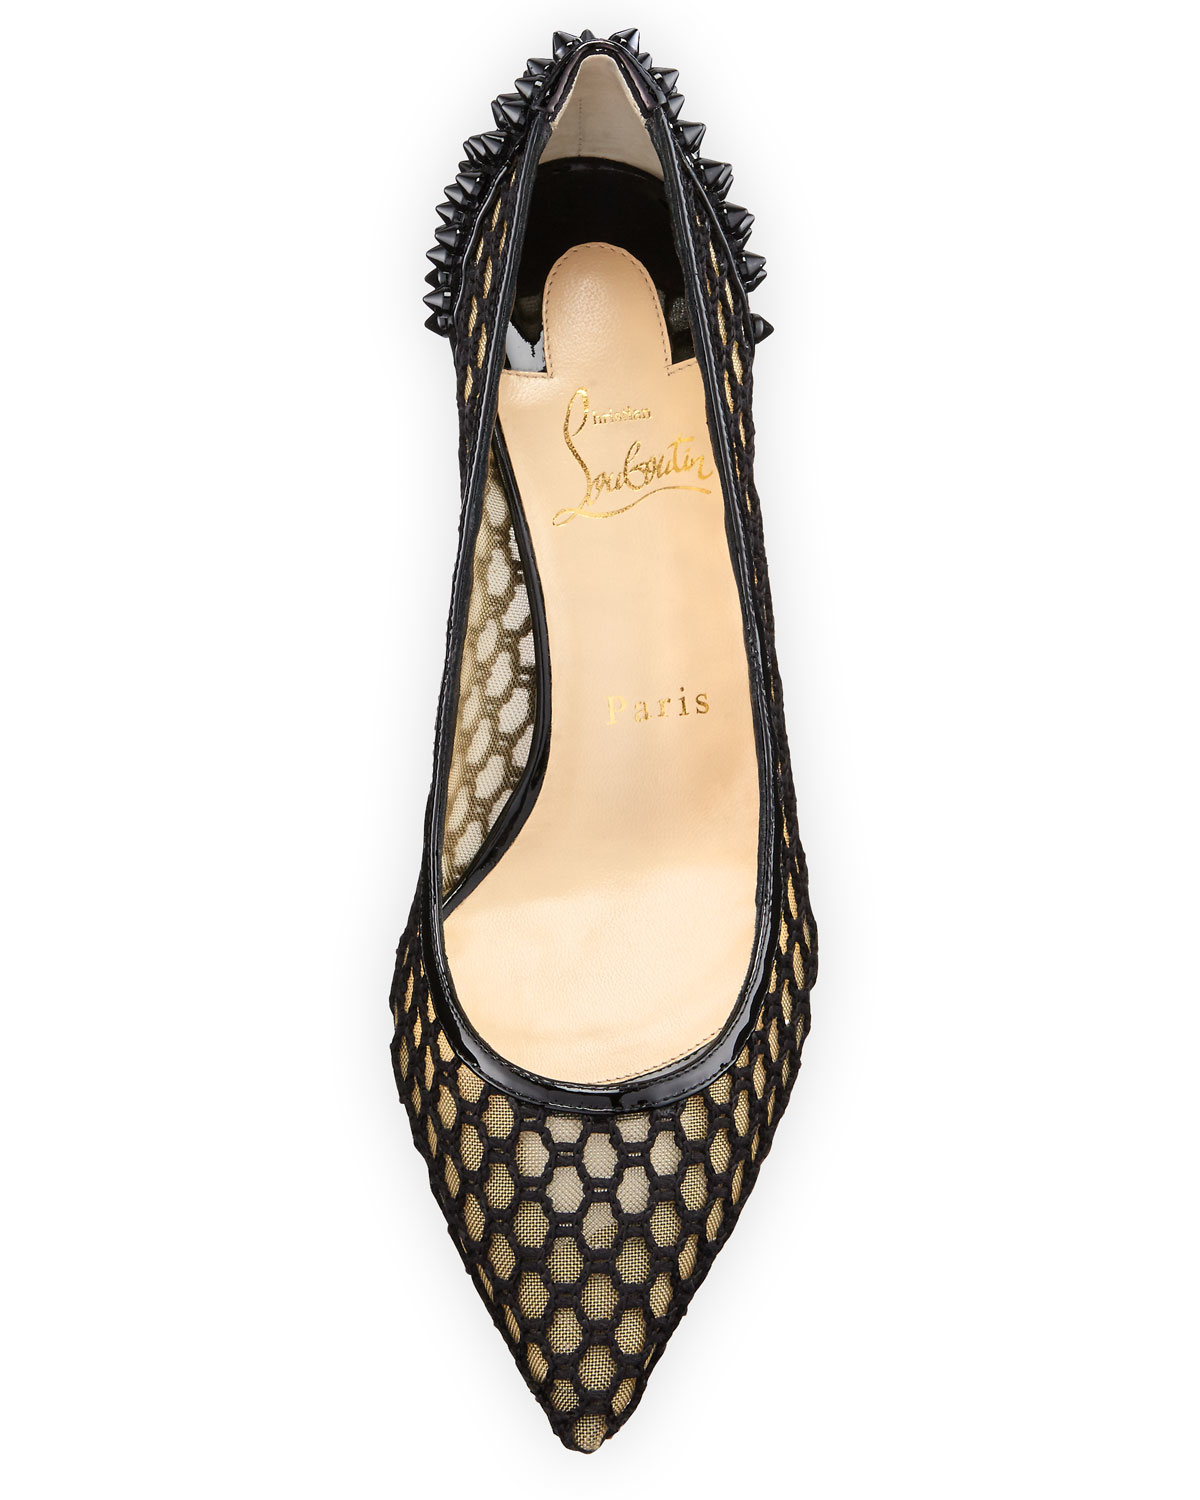 d8eddc91102 vuitton shoes replica - Christian louboutin Guni Mesh Spike 55mm Red Sole  Pump in Beige .